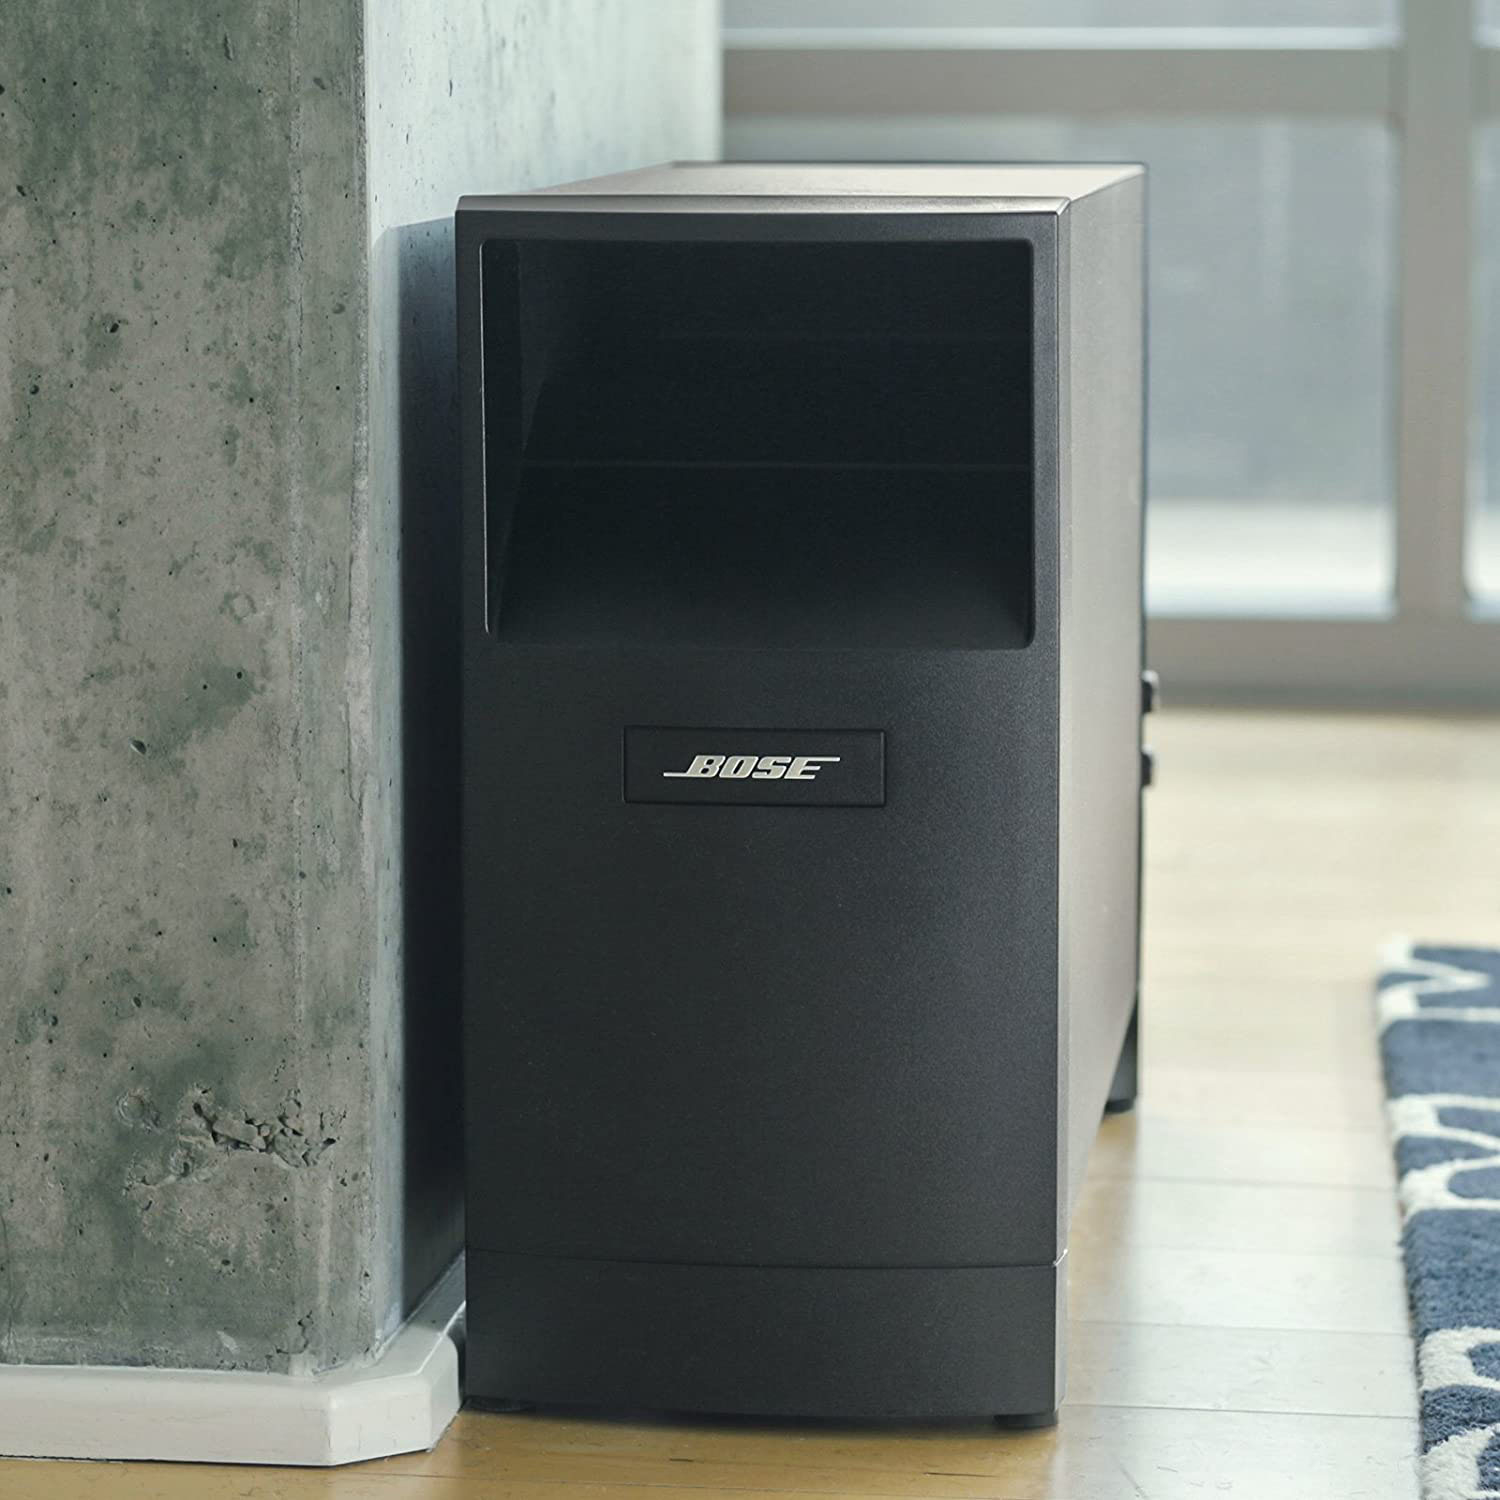 Bose Home Cinema Bose Acoustimass 10 Series V 5.1-channel Home Theater Speaker System Black Acoustimass 10 V System - Best Buy